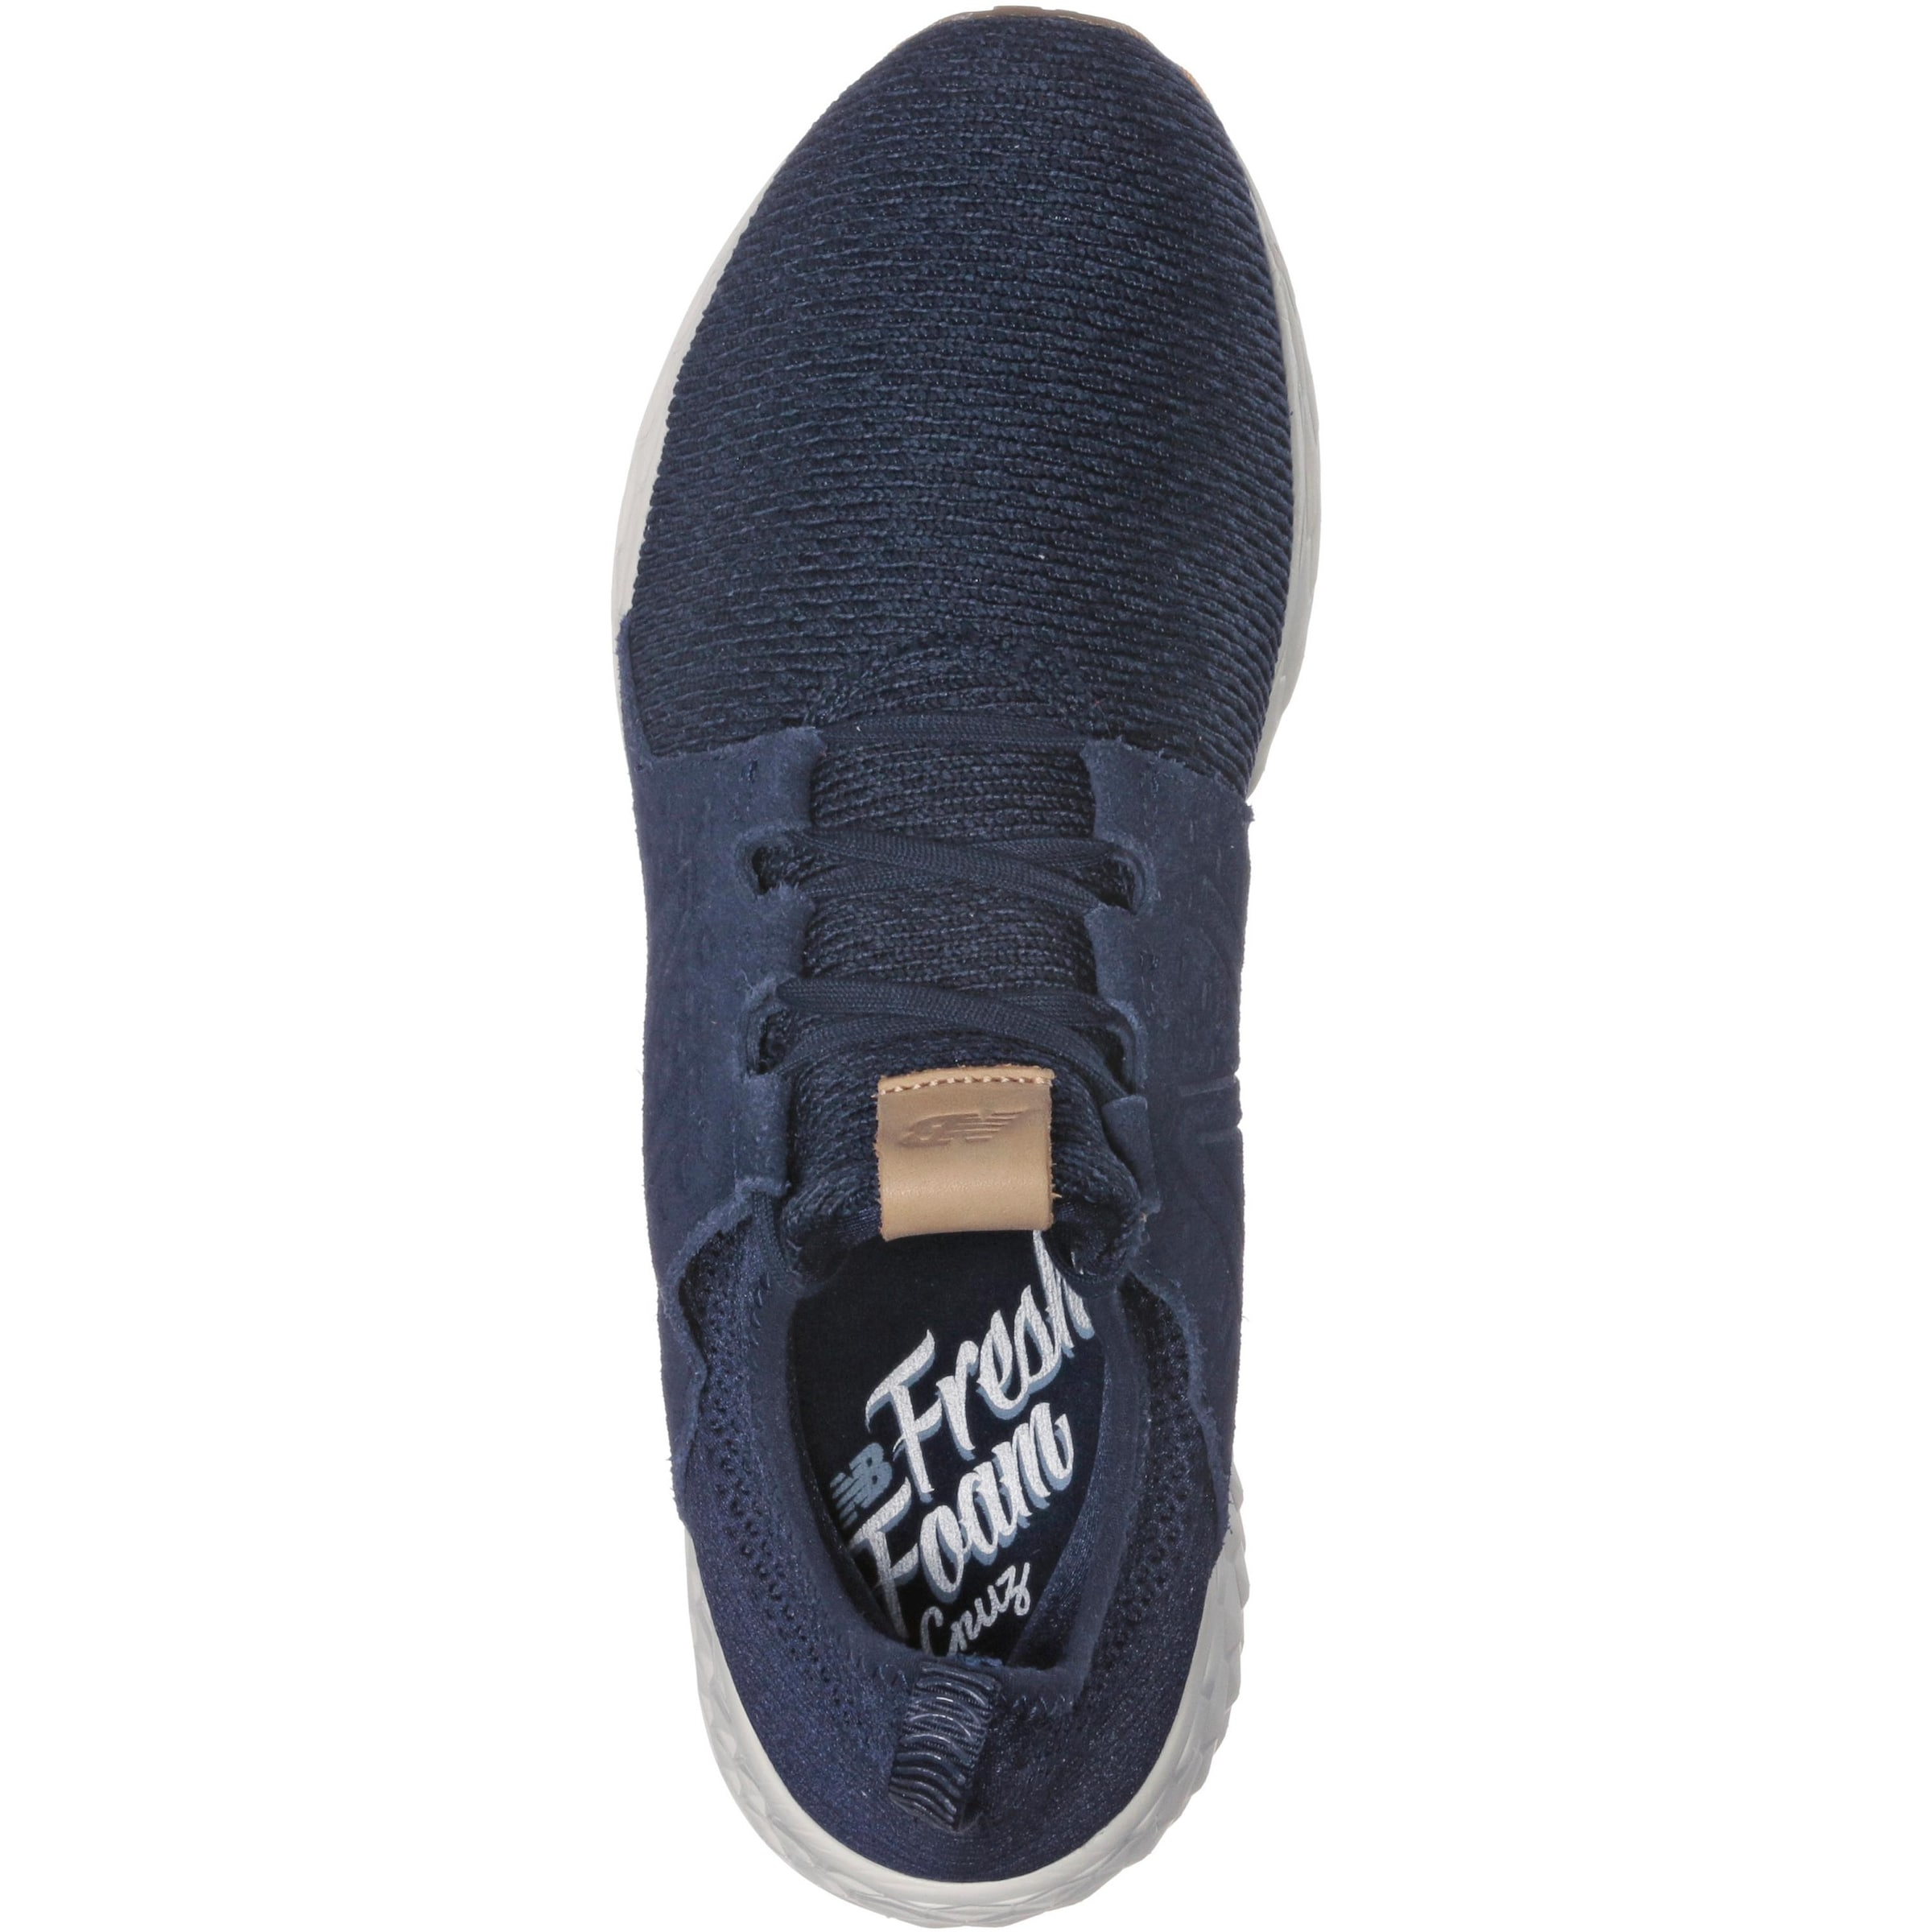 Basses New 'cruz' Baskets En Balance Nuit Bleu qMVUzGSp